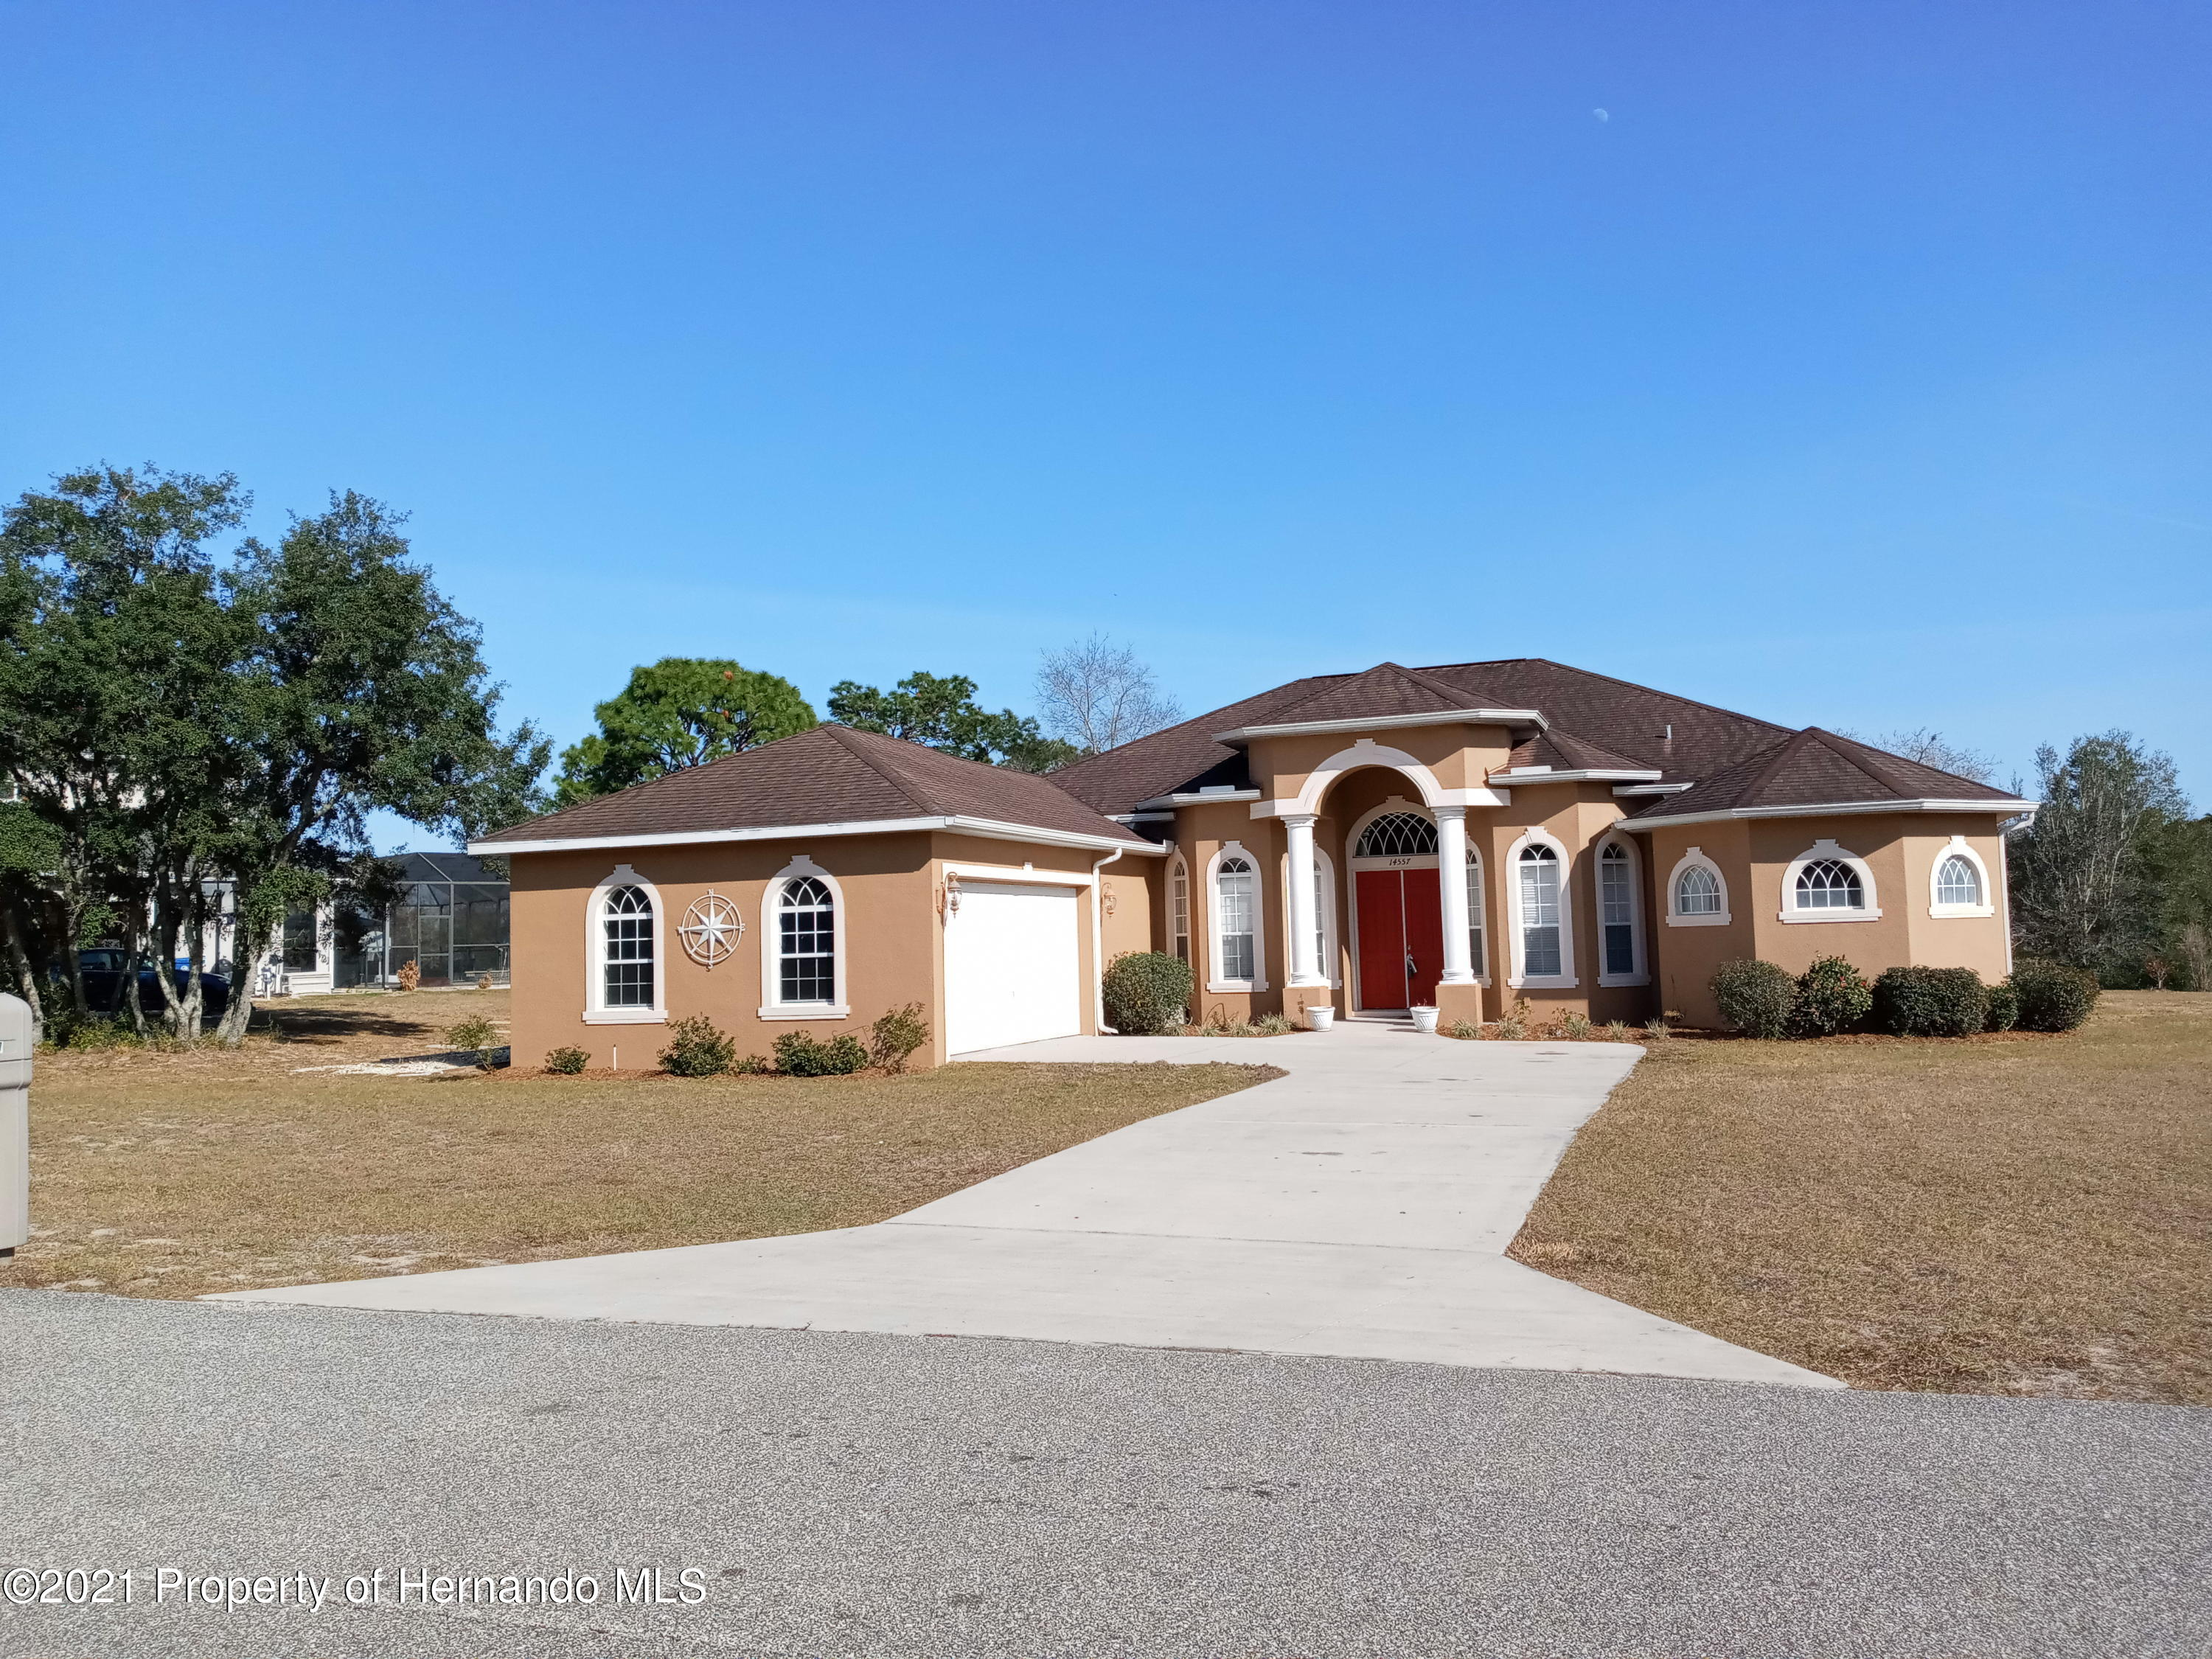 Details for 14557 Copeland Way, Brooksville, FL 34604